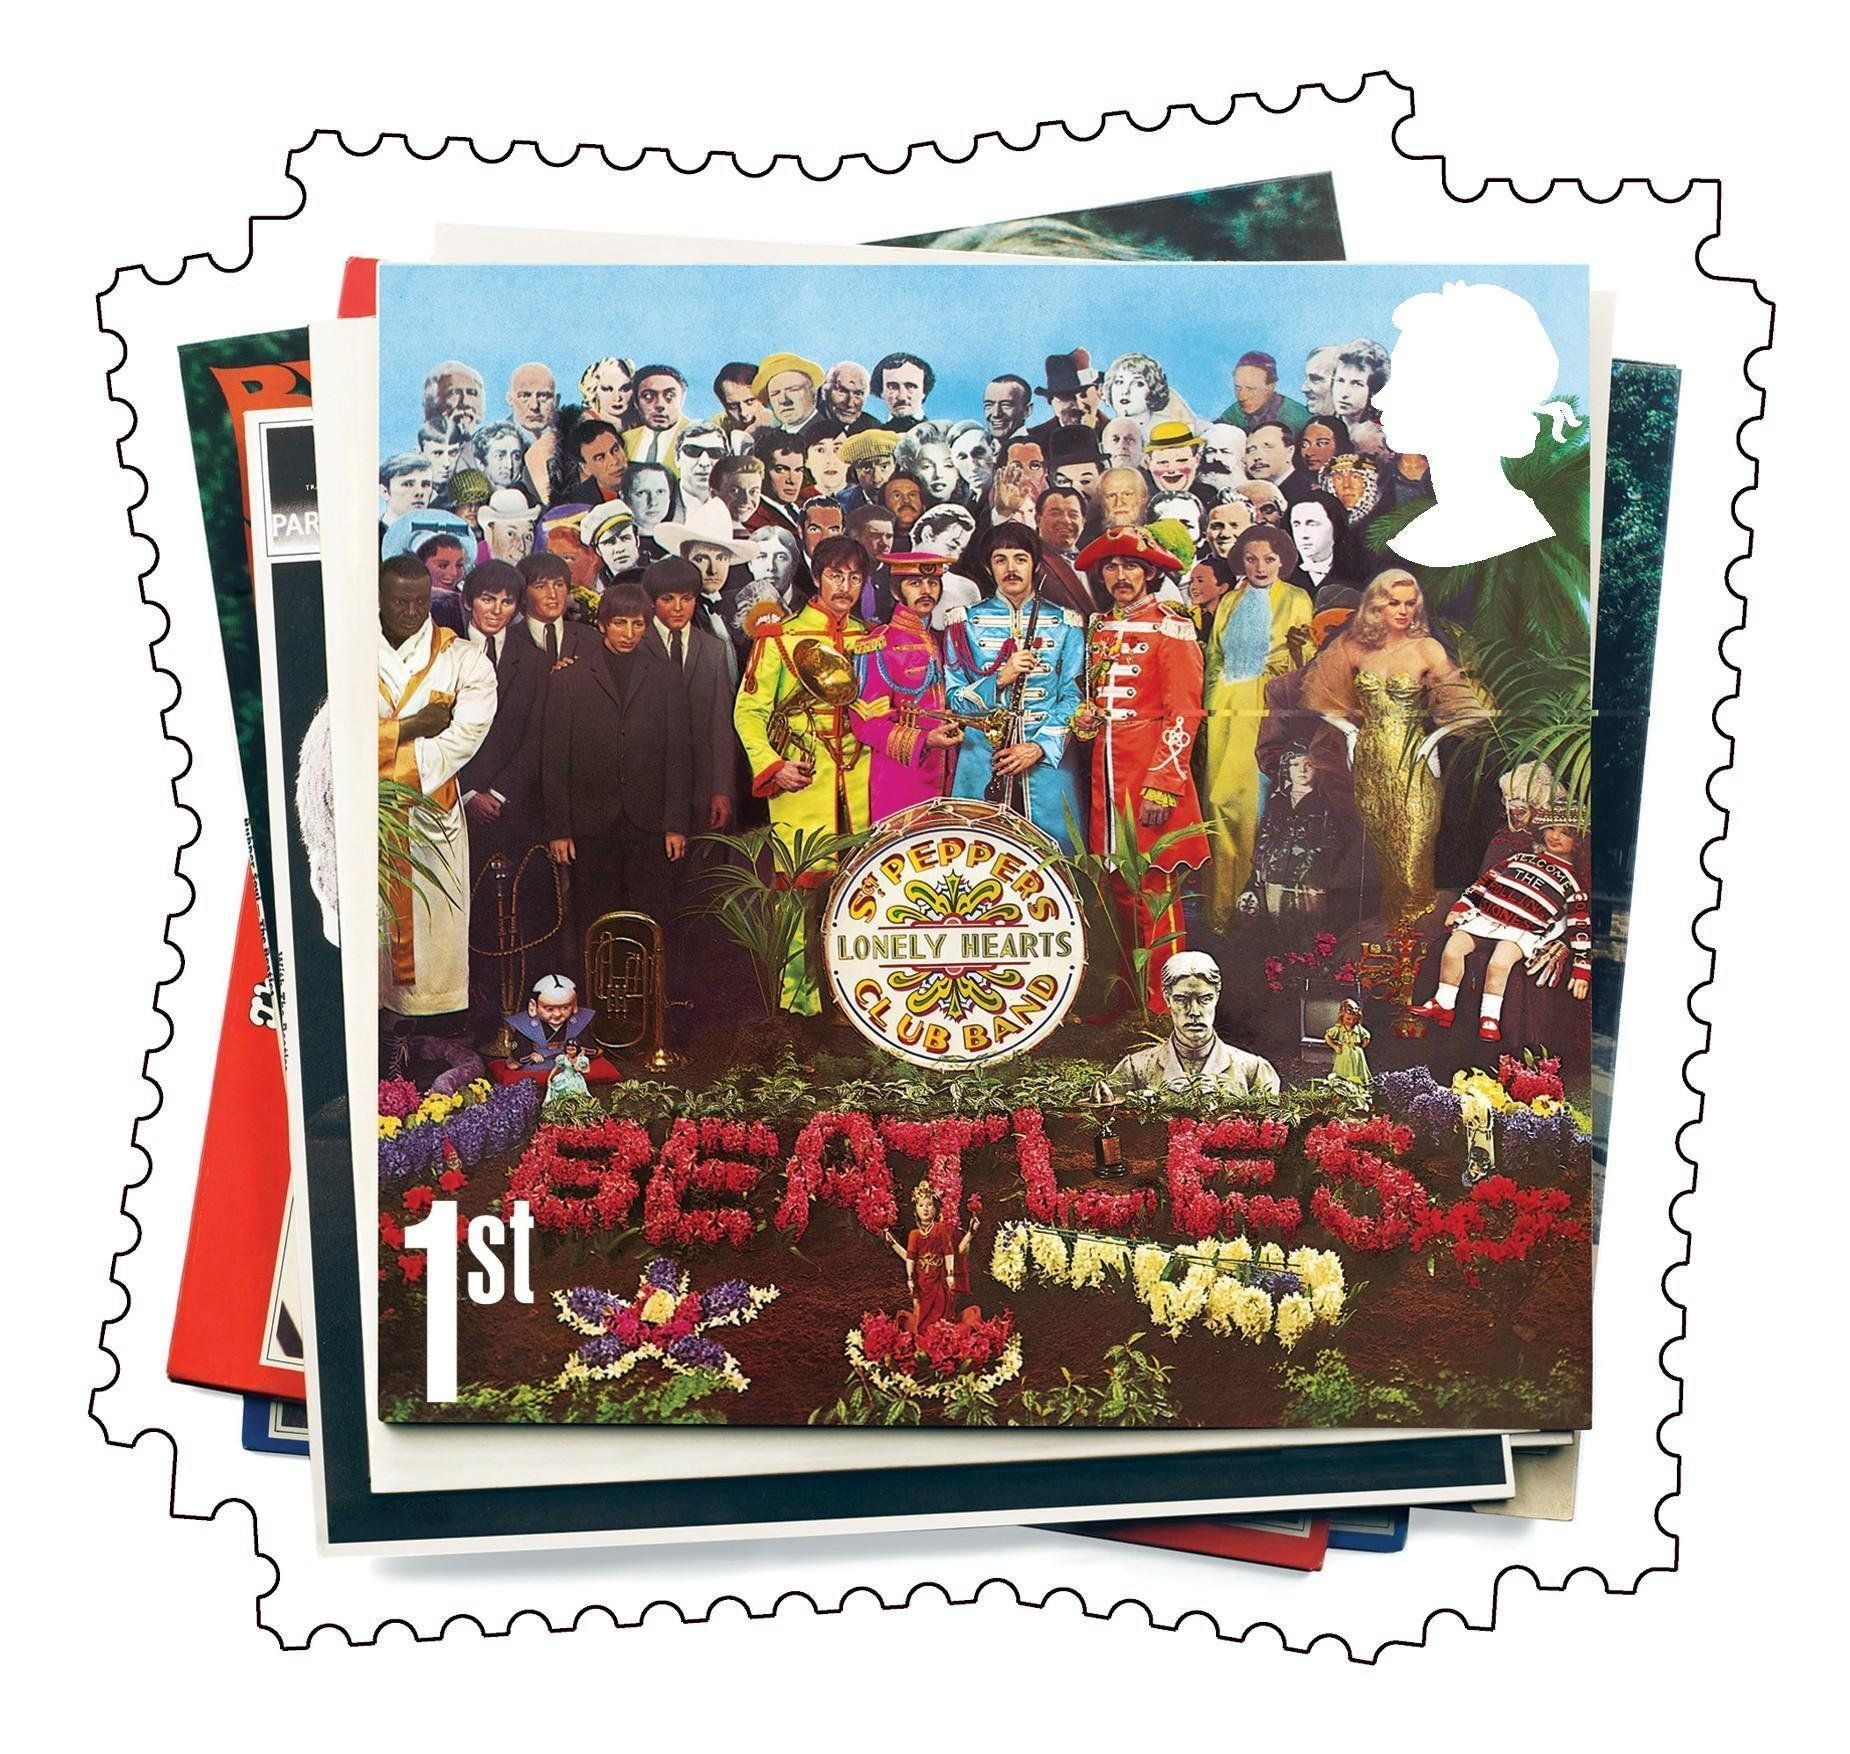 Undated handout image released by Royal Mail of a Sgt Pepper's Lonely Hearts Club Band Beatles album cover stamp, which will go on sale in January 2007.